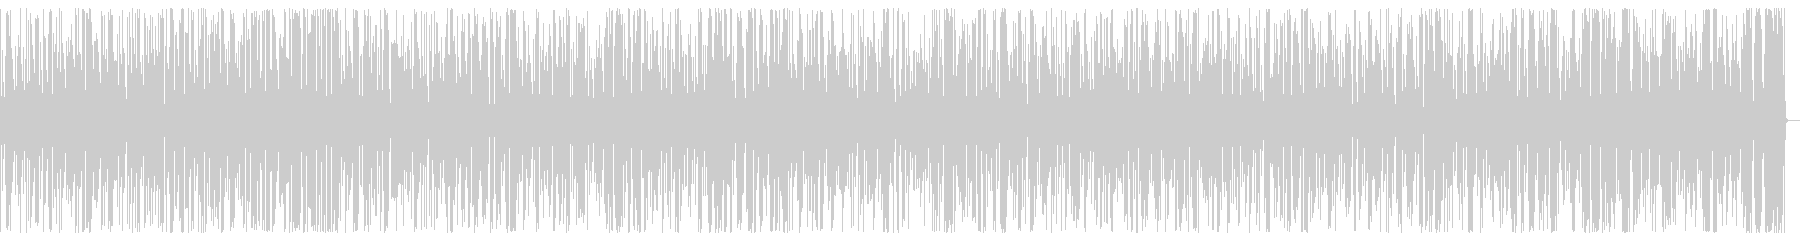 Bright, relaxed and stylish jazz piano BGM's unreproduced waveform